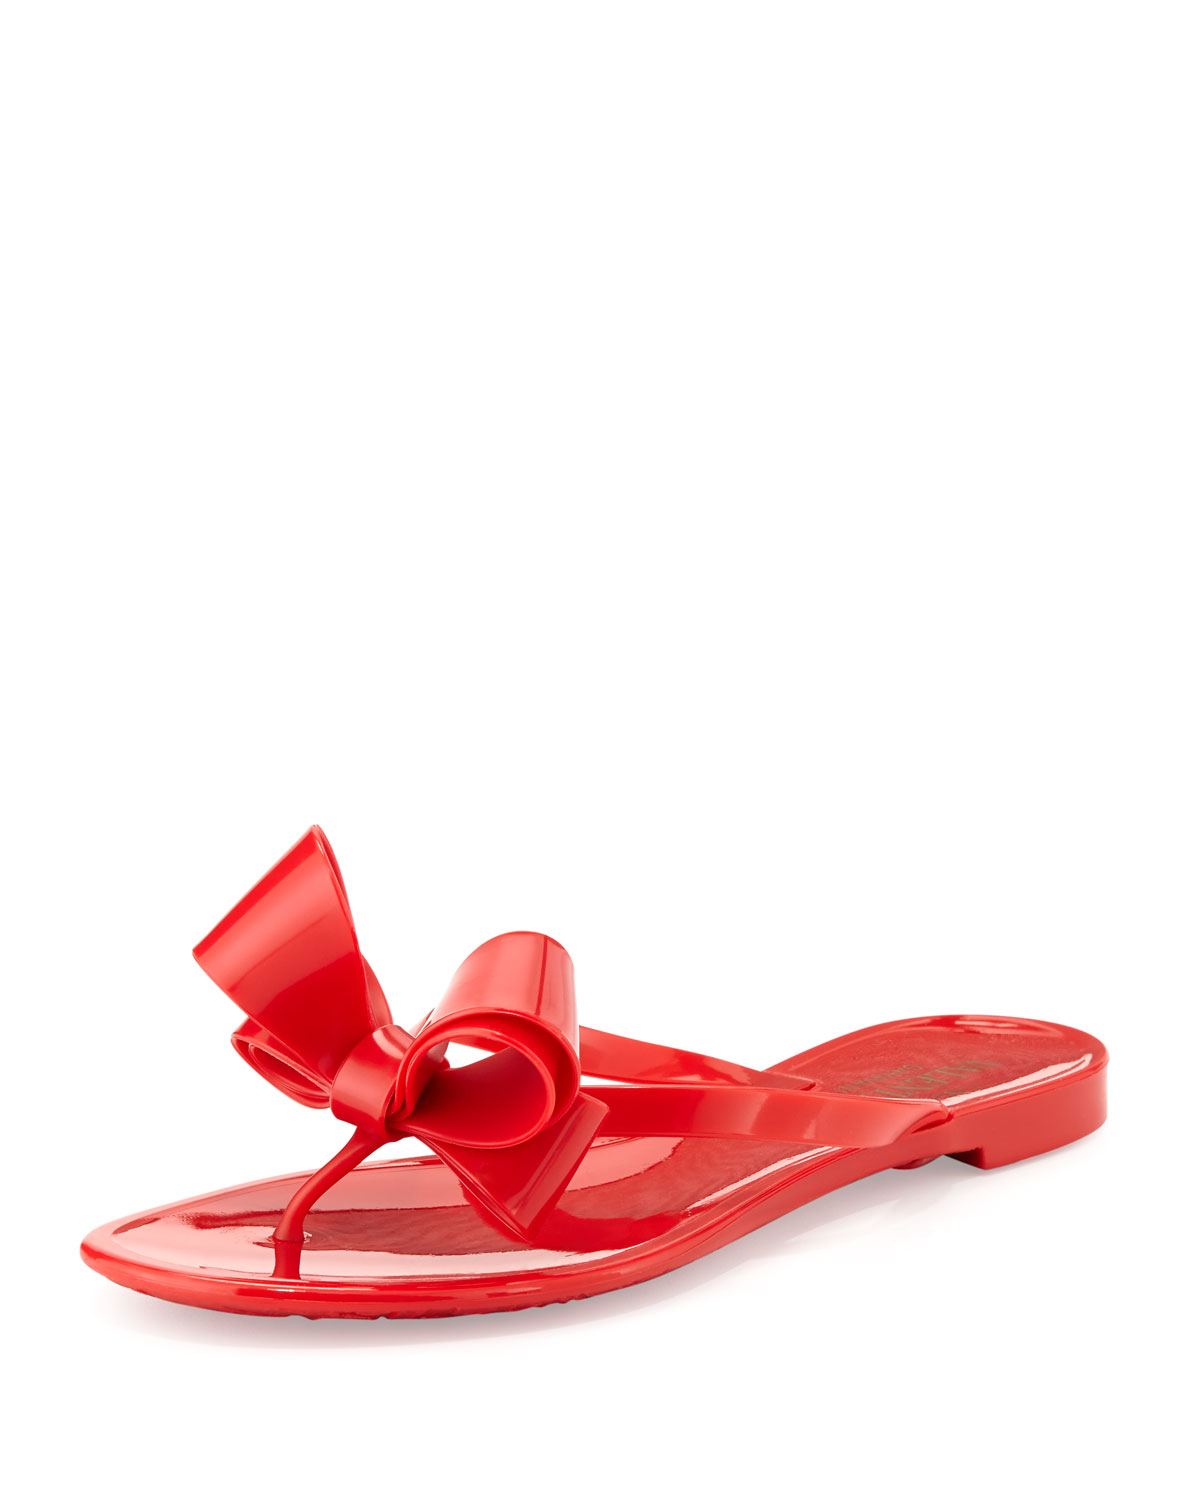 999a4dab200 Valentino Couture Bow Jelly Flat Thong Sandal